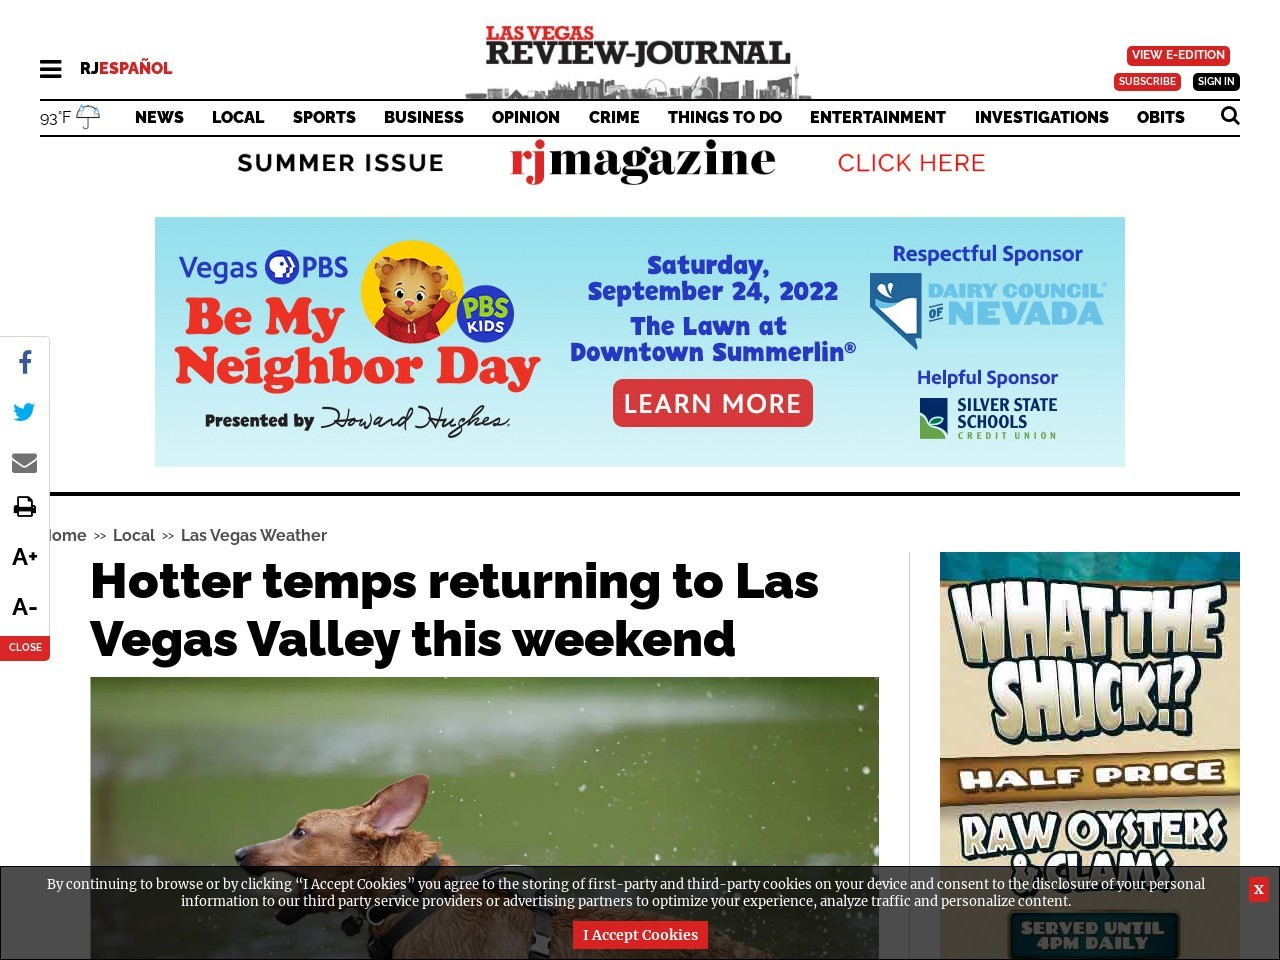 Hotter temps returning to Las Vegas Valley this weekend